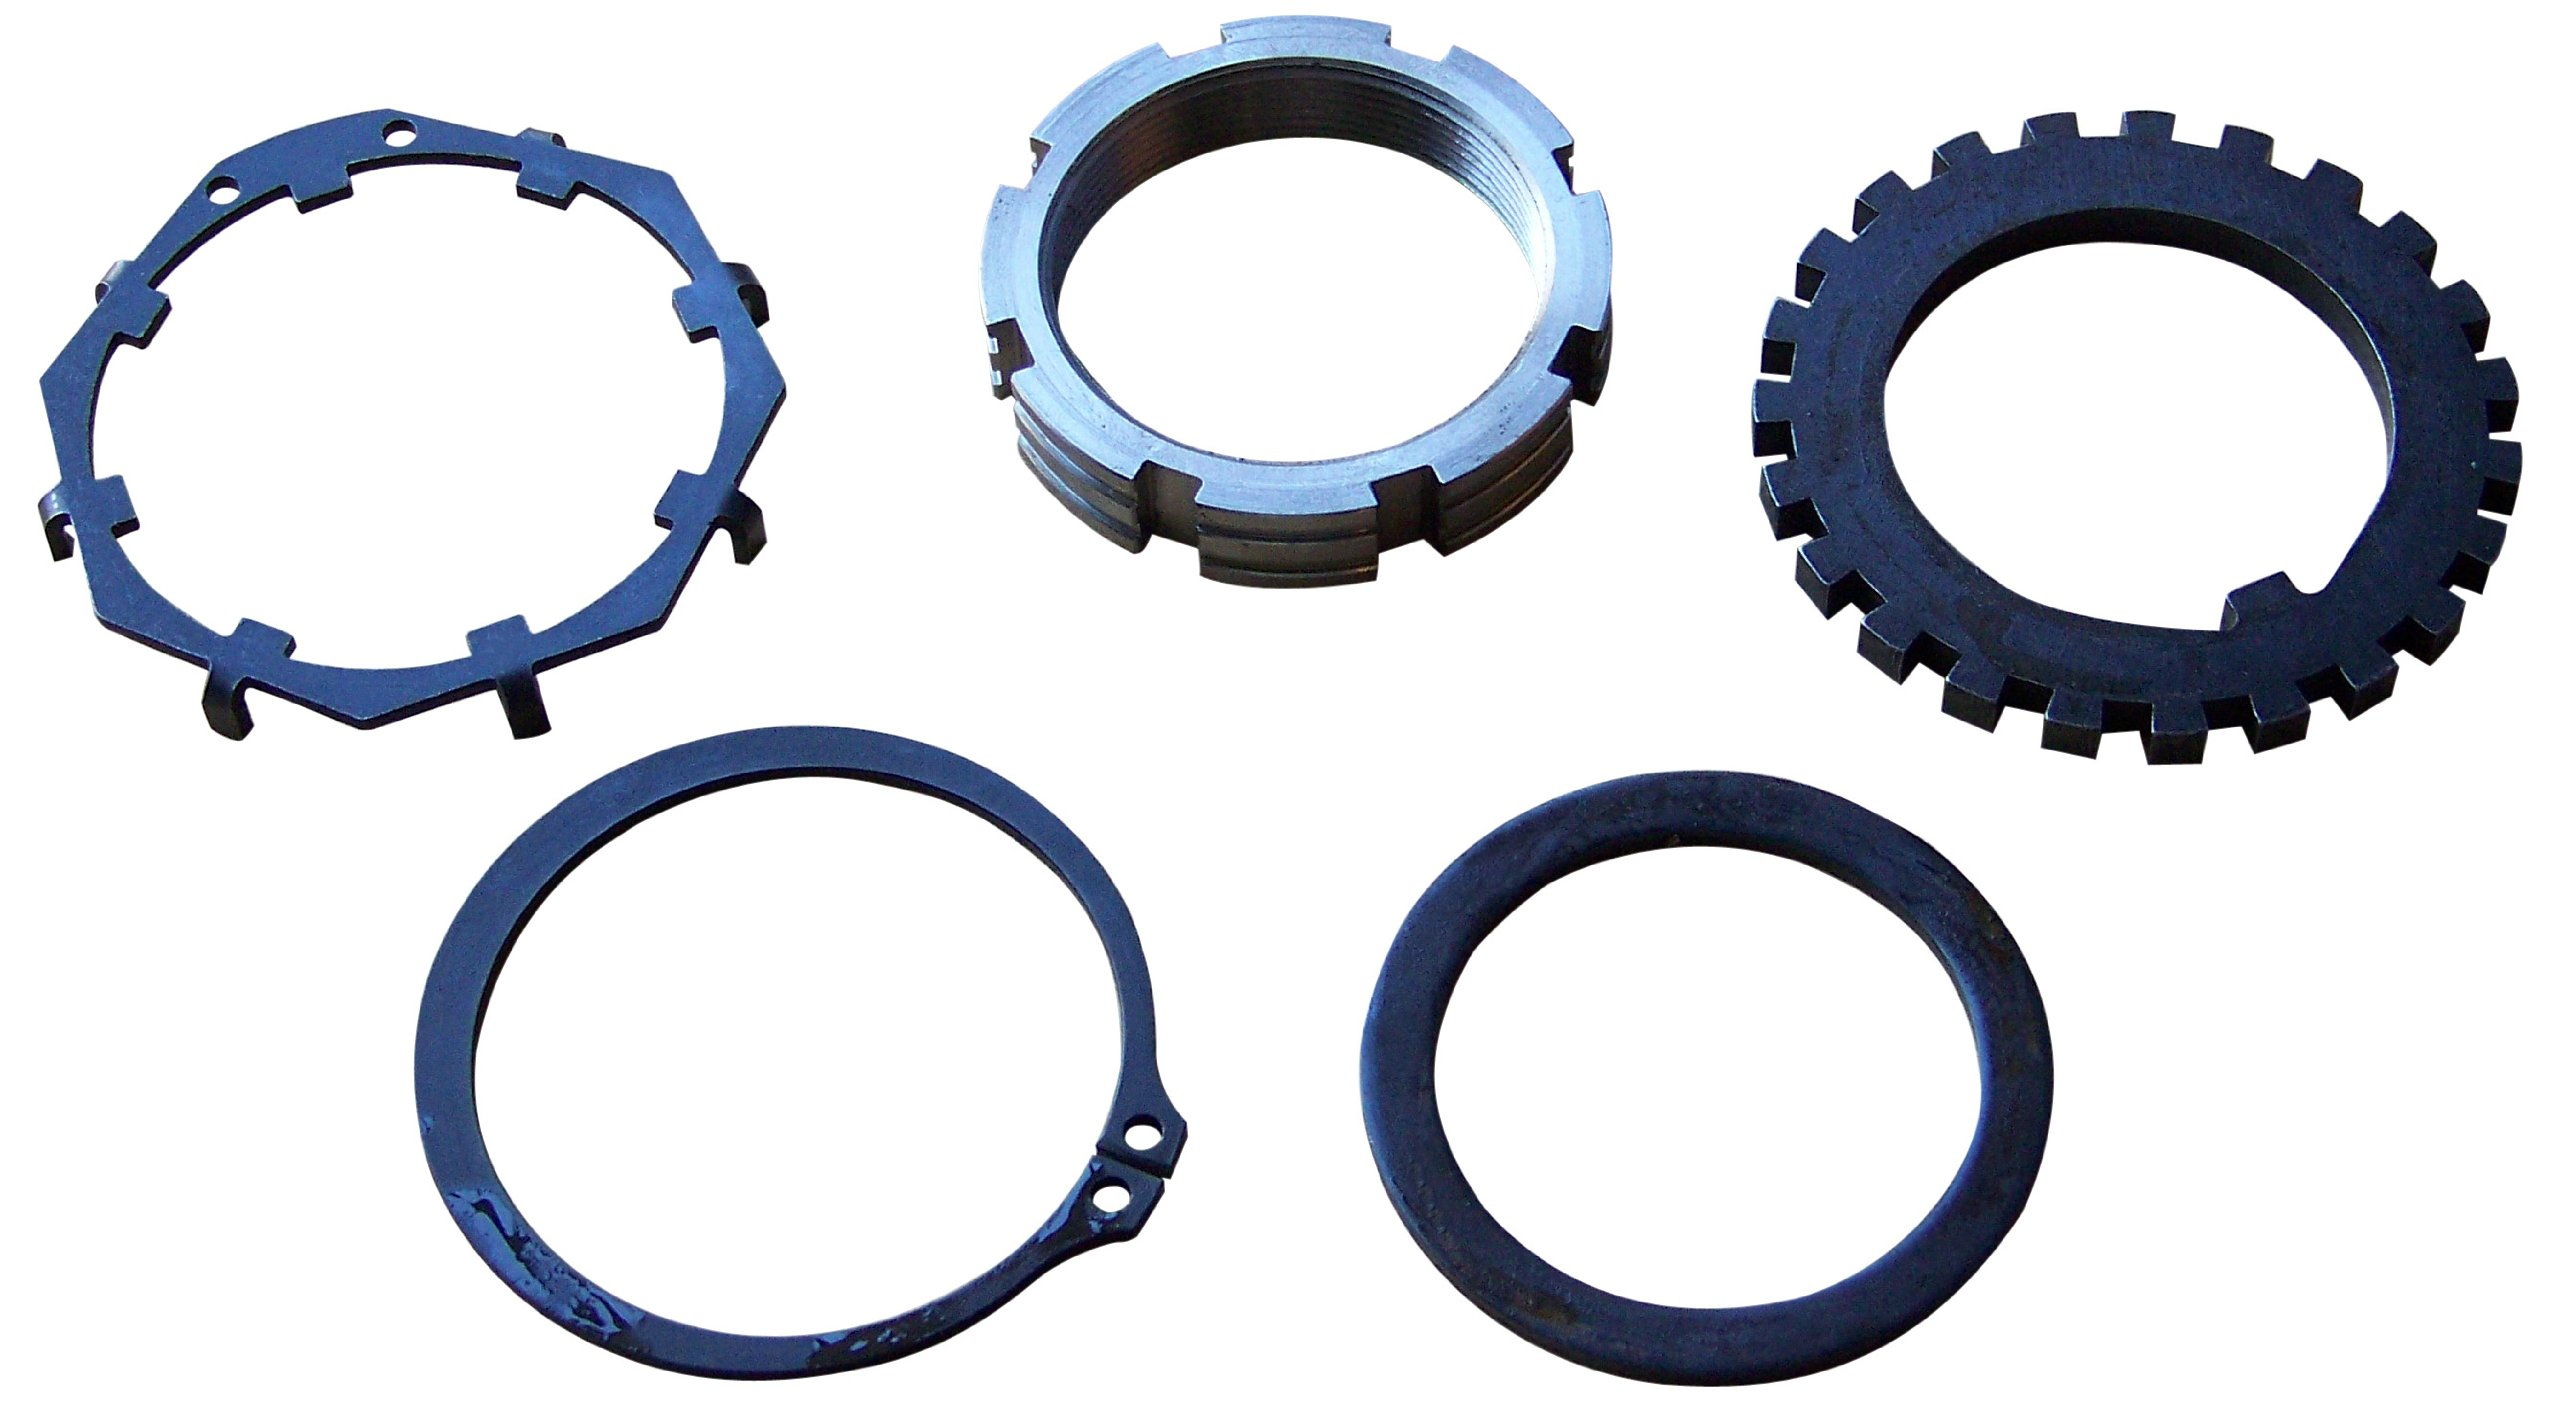 Stage 8 DNA-60 X-Lock Locking Spindle Nut Assembly for Dana 60, 70, 80 and GM Corporate 14 Bolt Spindles